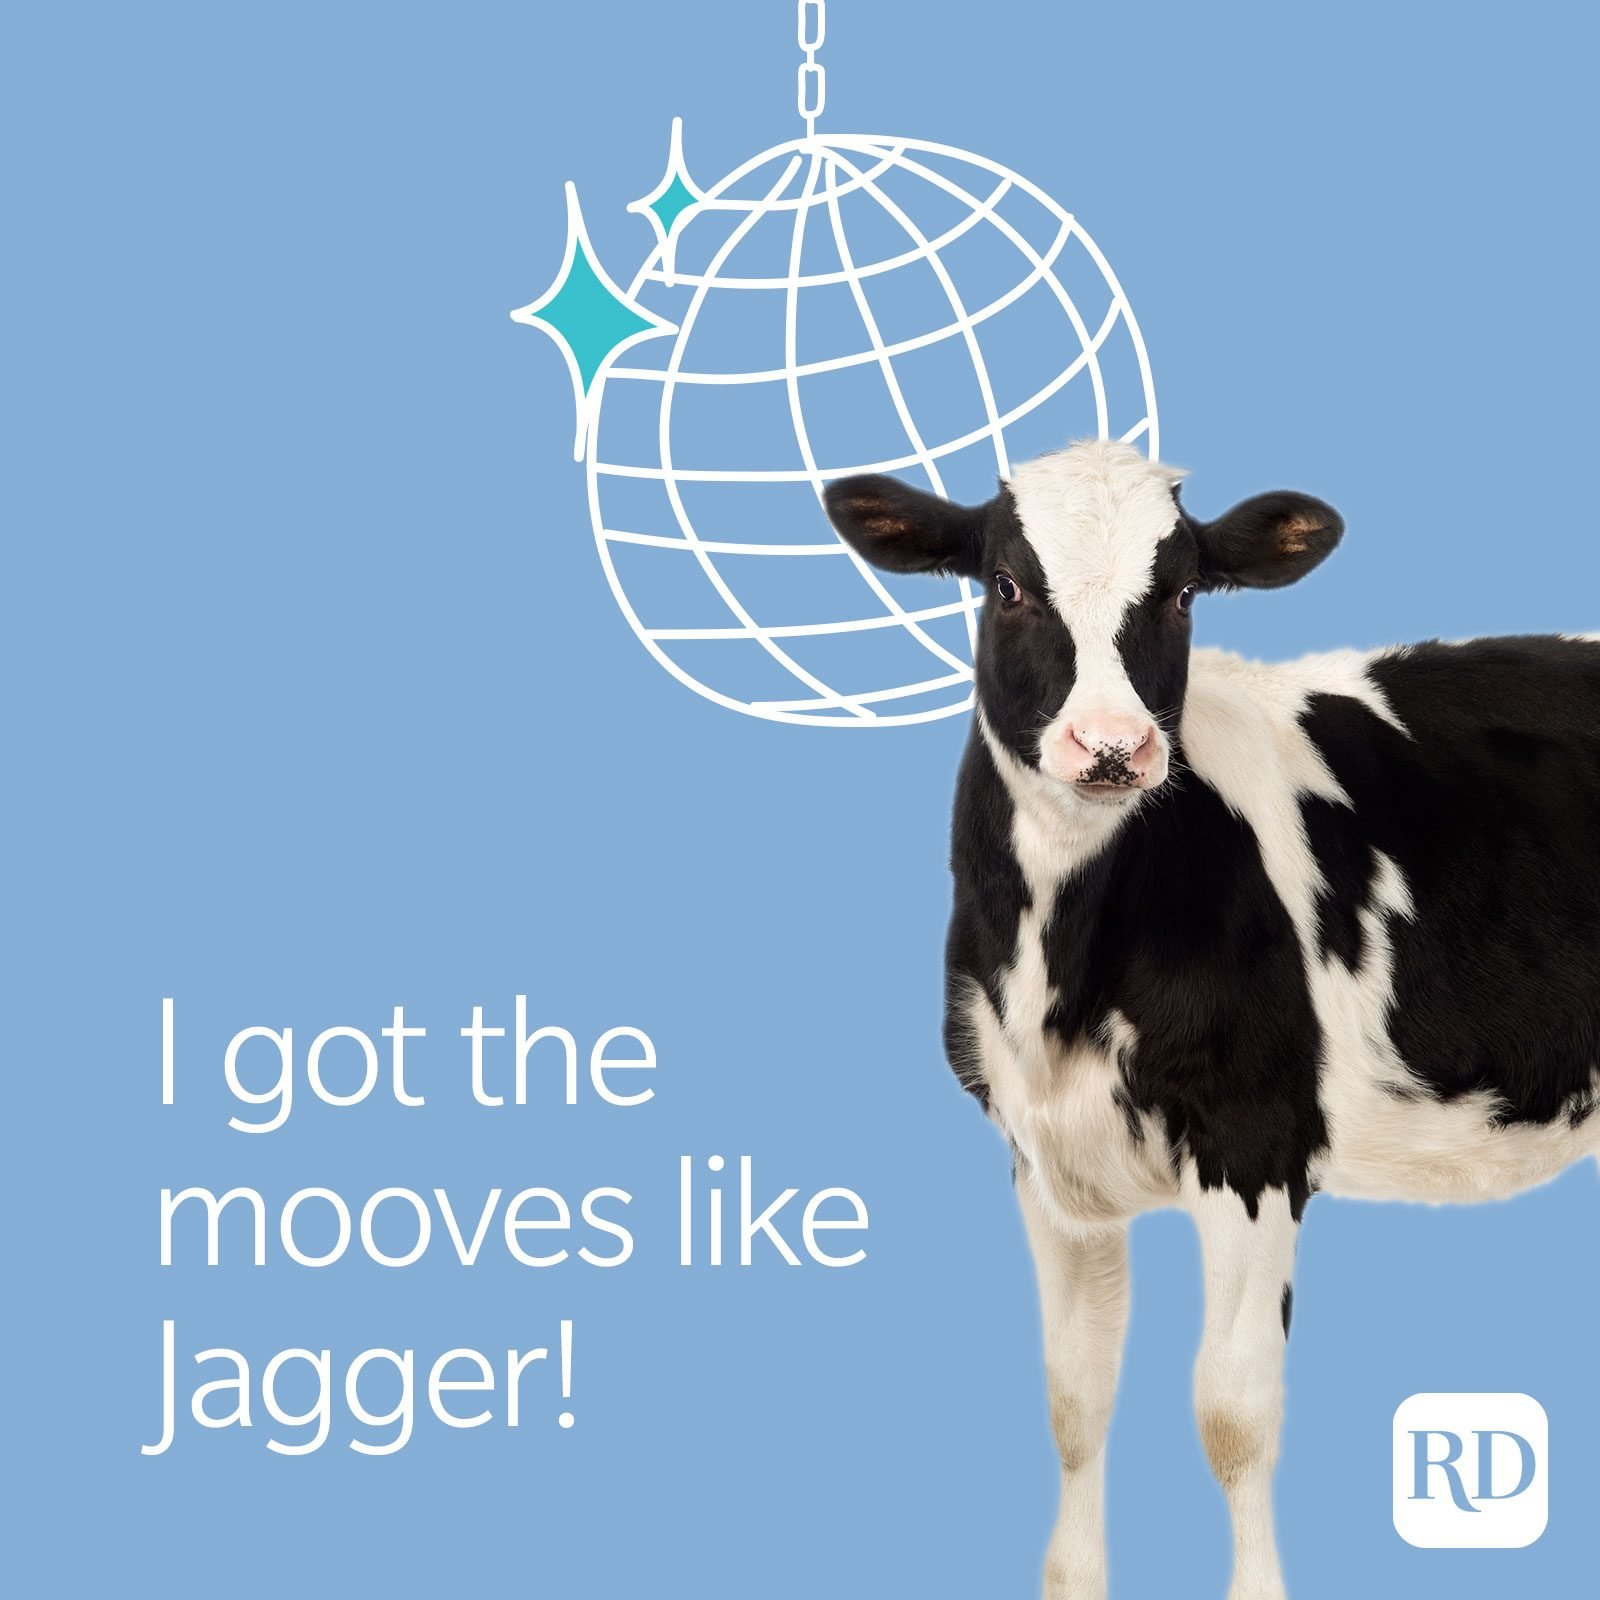 I got the mooves like Jagger!